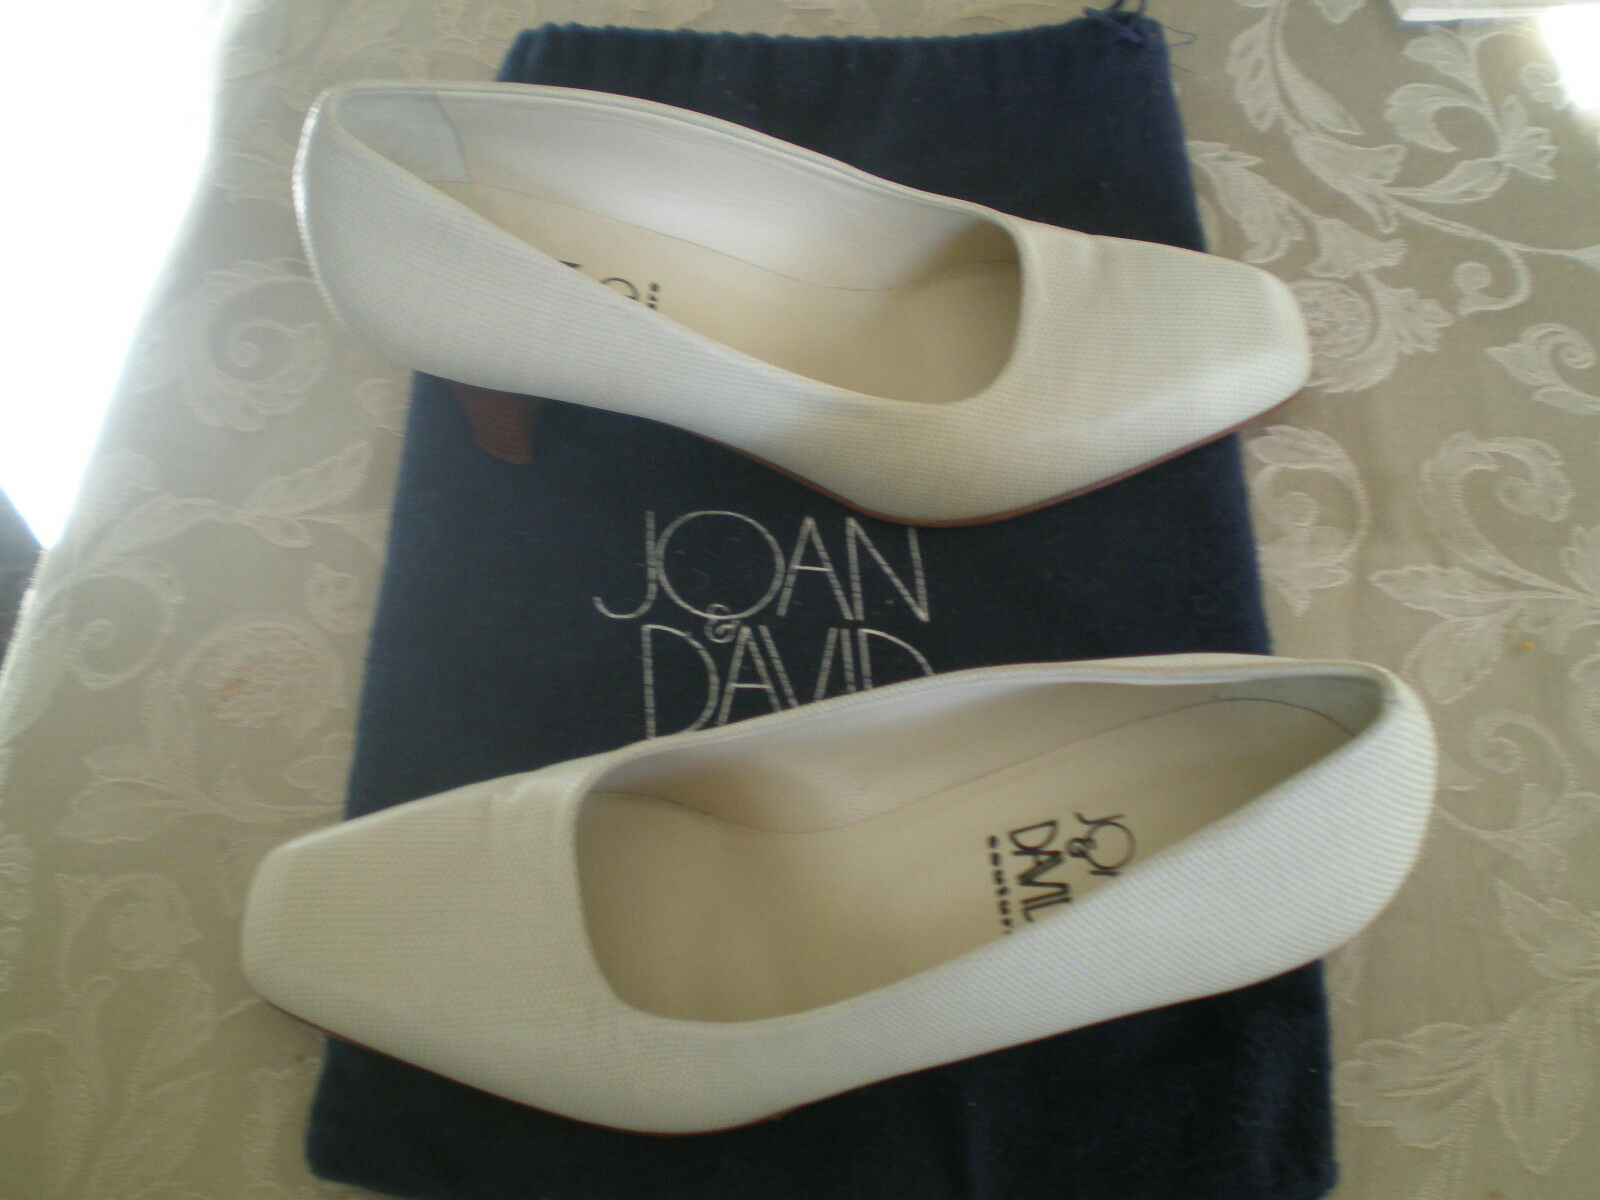 Joan & David Couture Woman's Schuhes Brand New New New 9298f9